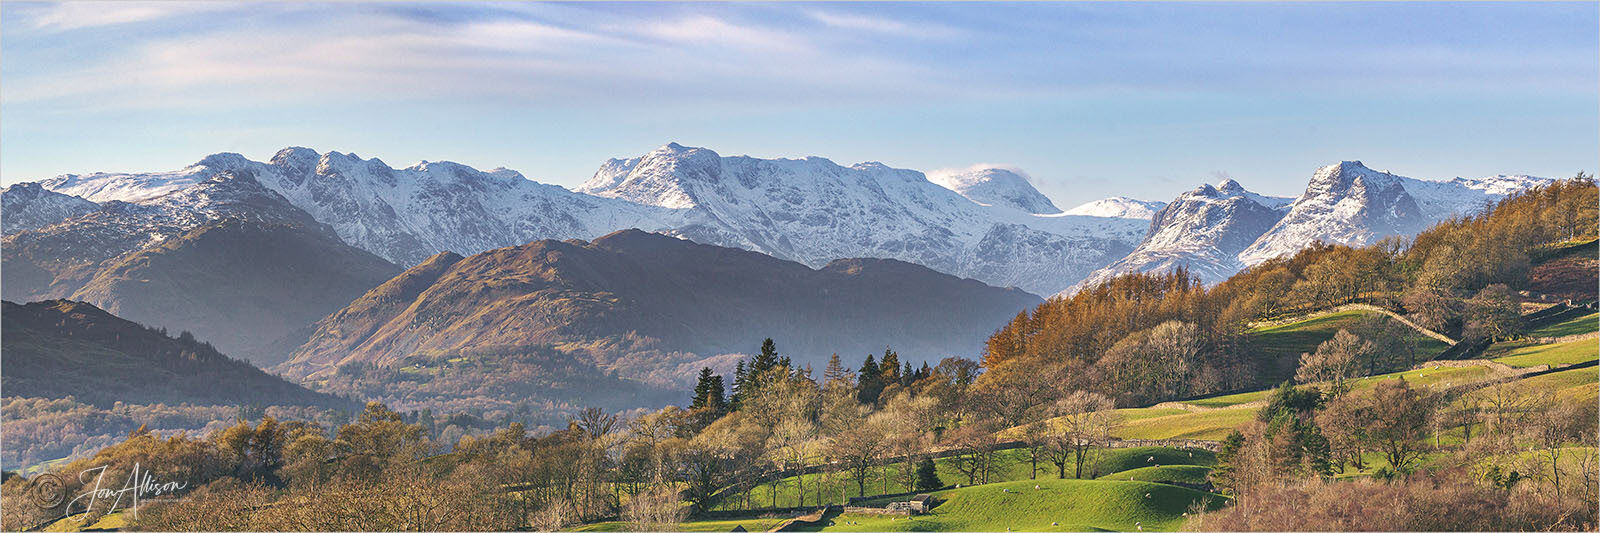 Crinkle Crags & Bowfell from Troutbeck